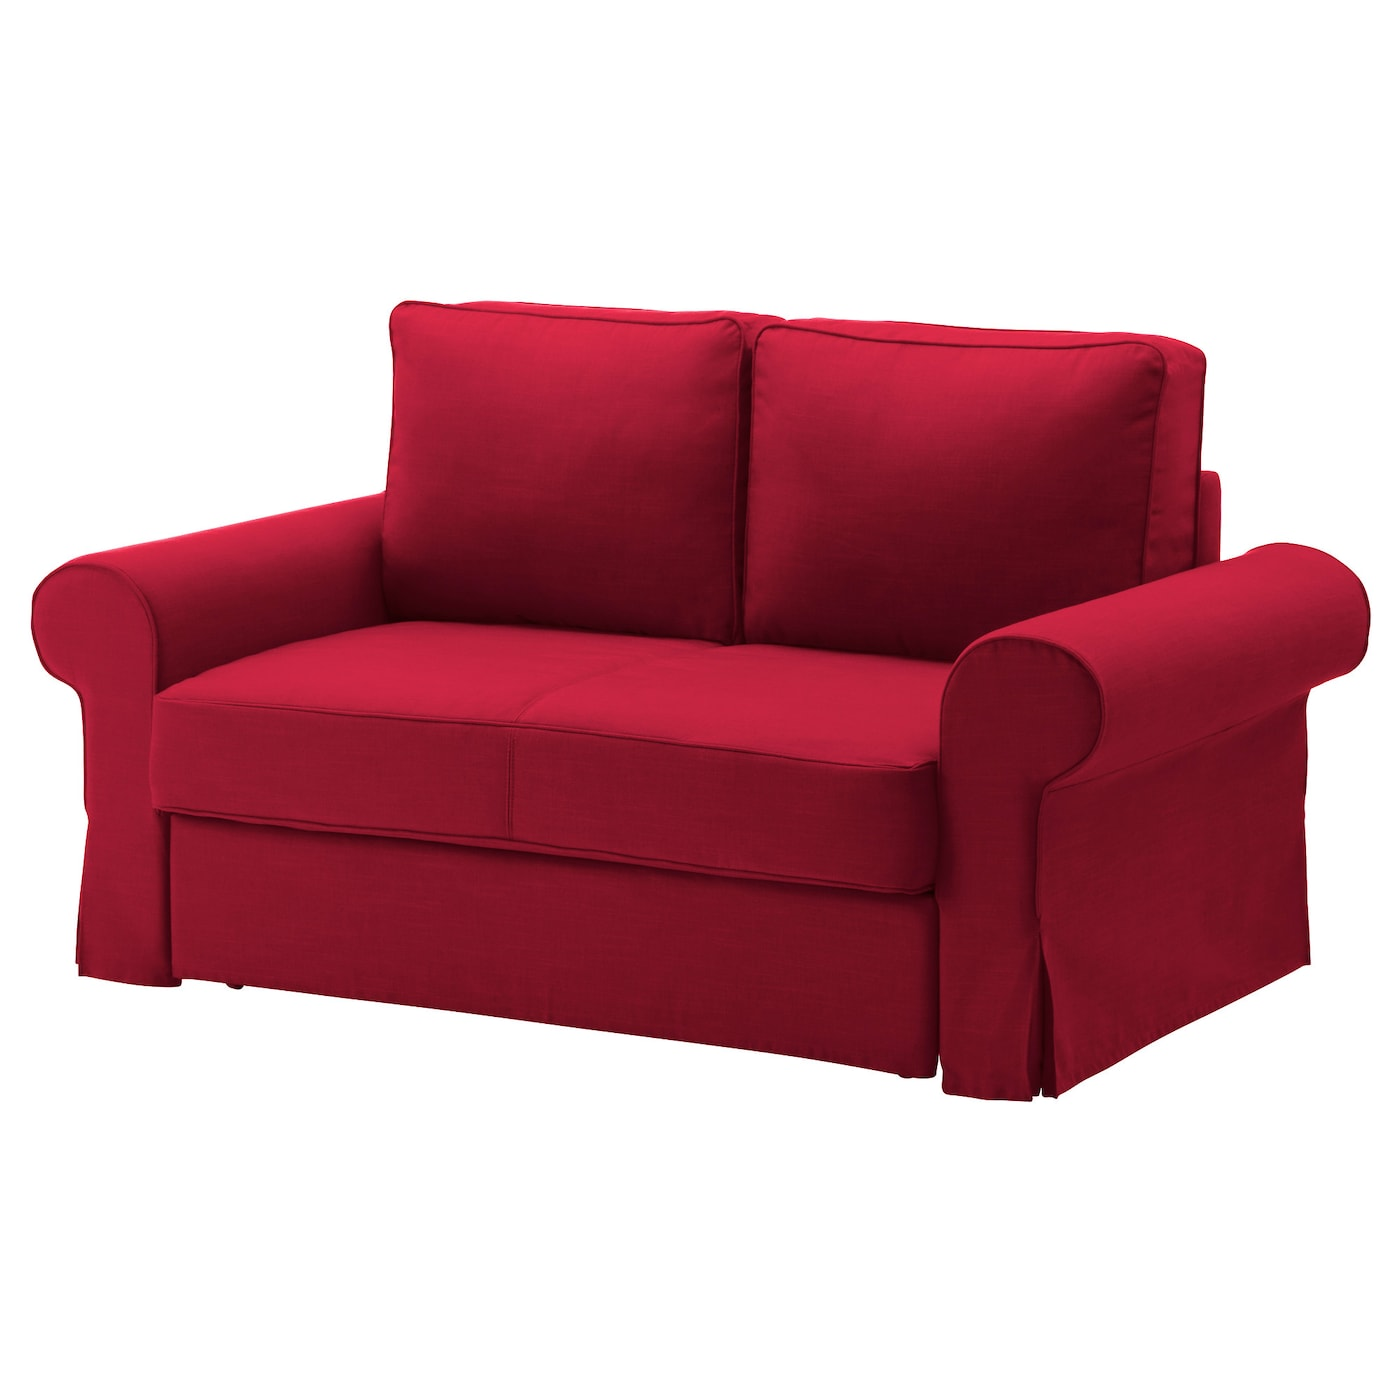 Backabro two seat sofa bed nordvalla red ikea for Ikea sofa rosa